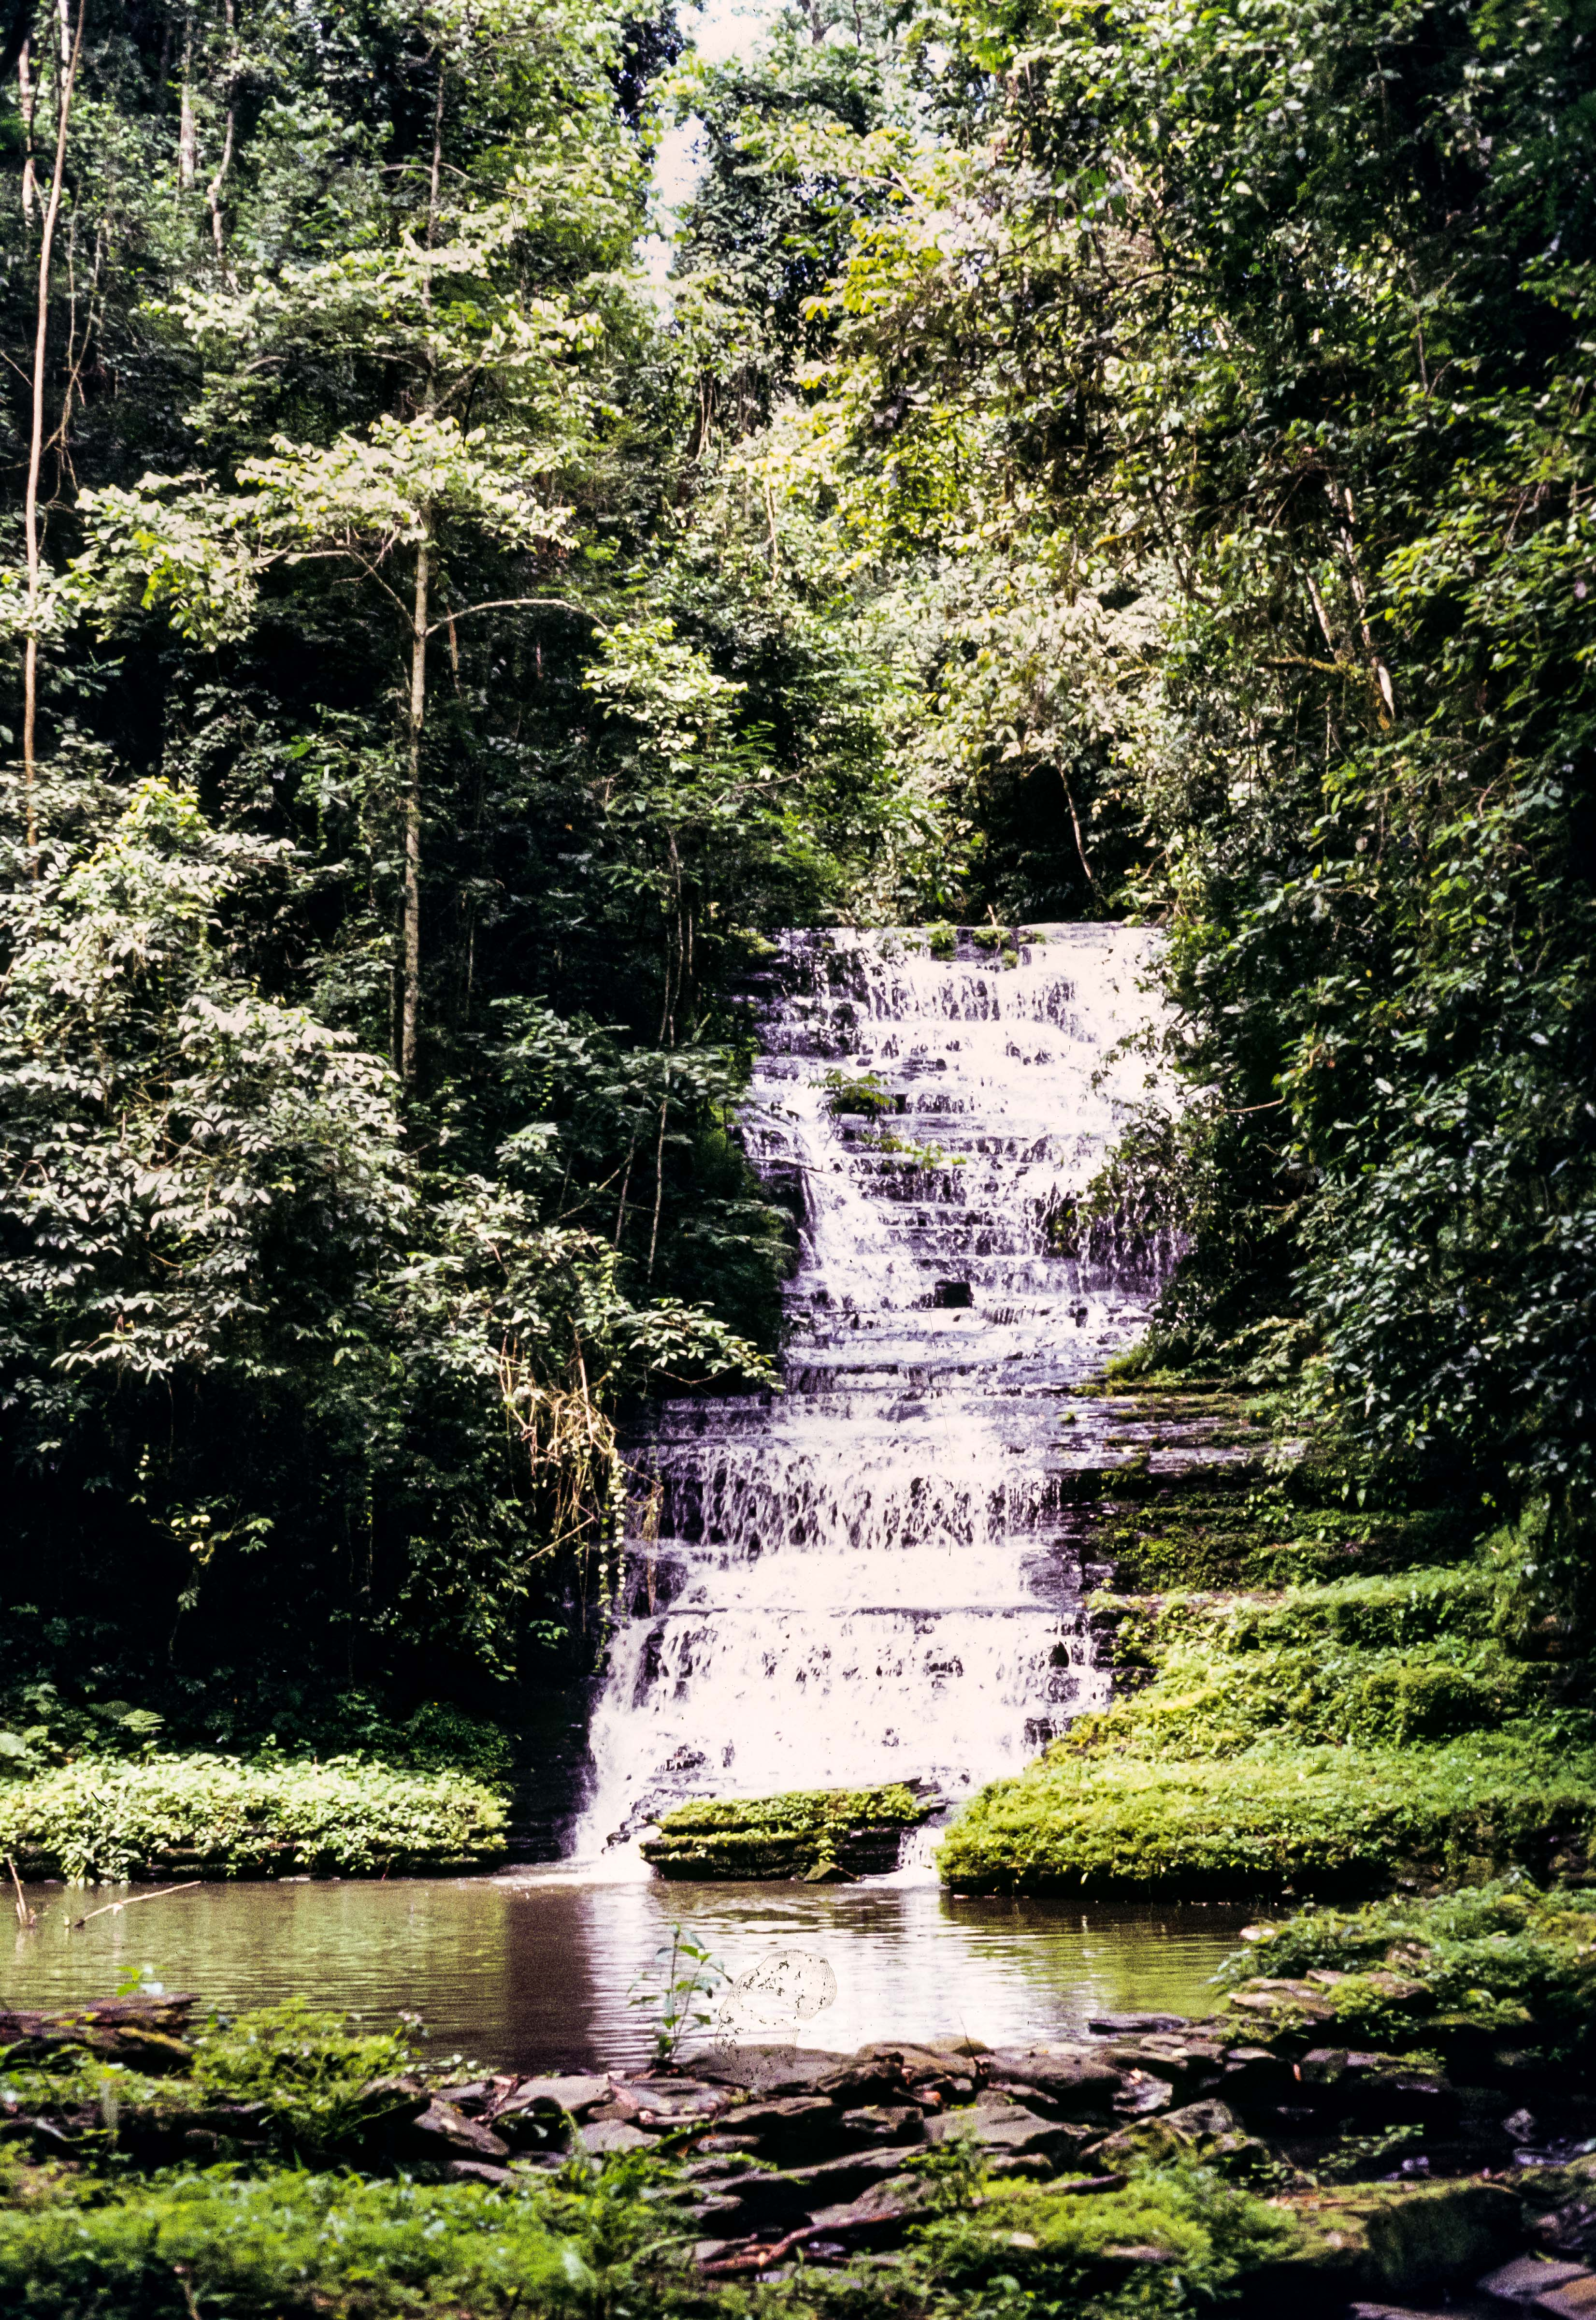 Congo Zaire, Mt. Hoyo Waterfall, 1984